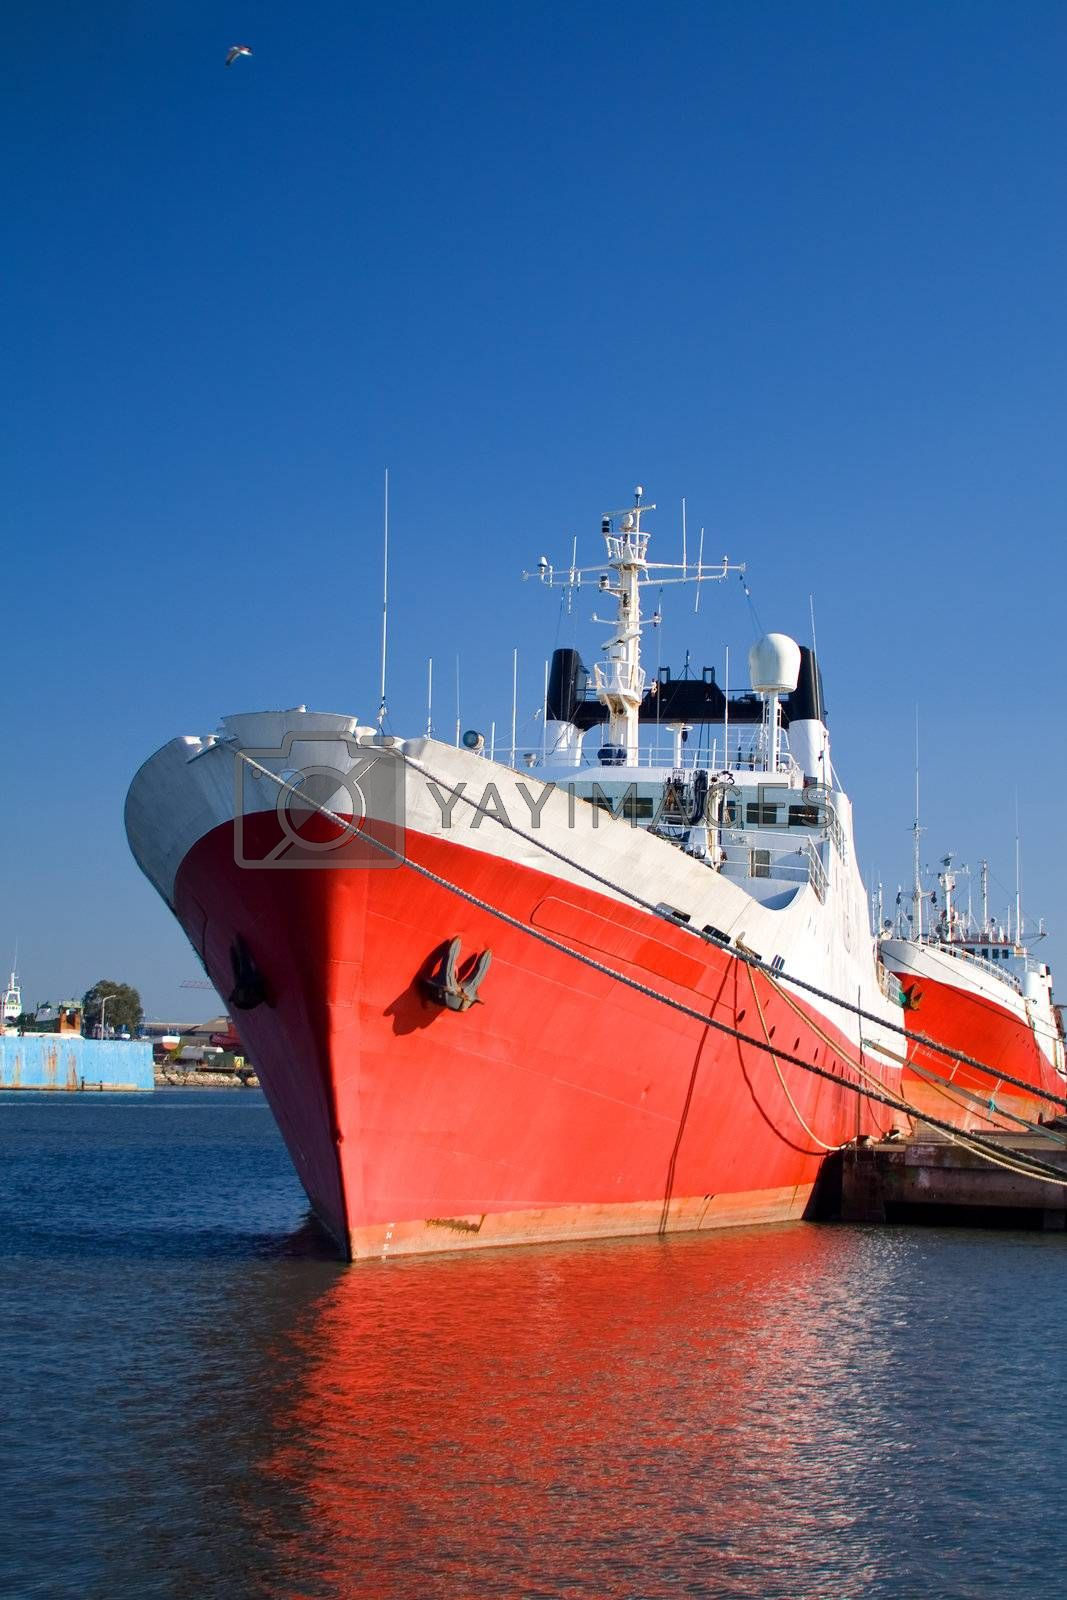 Big red ship by PauloResende